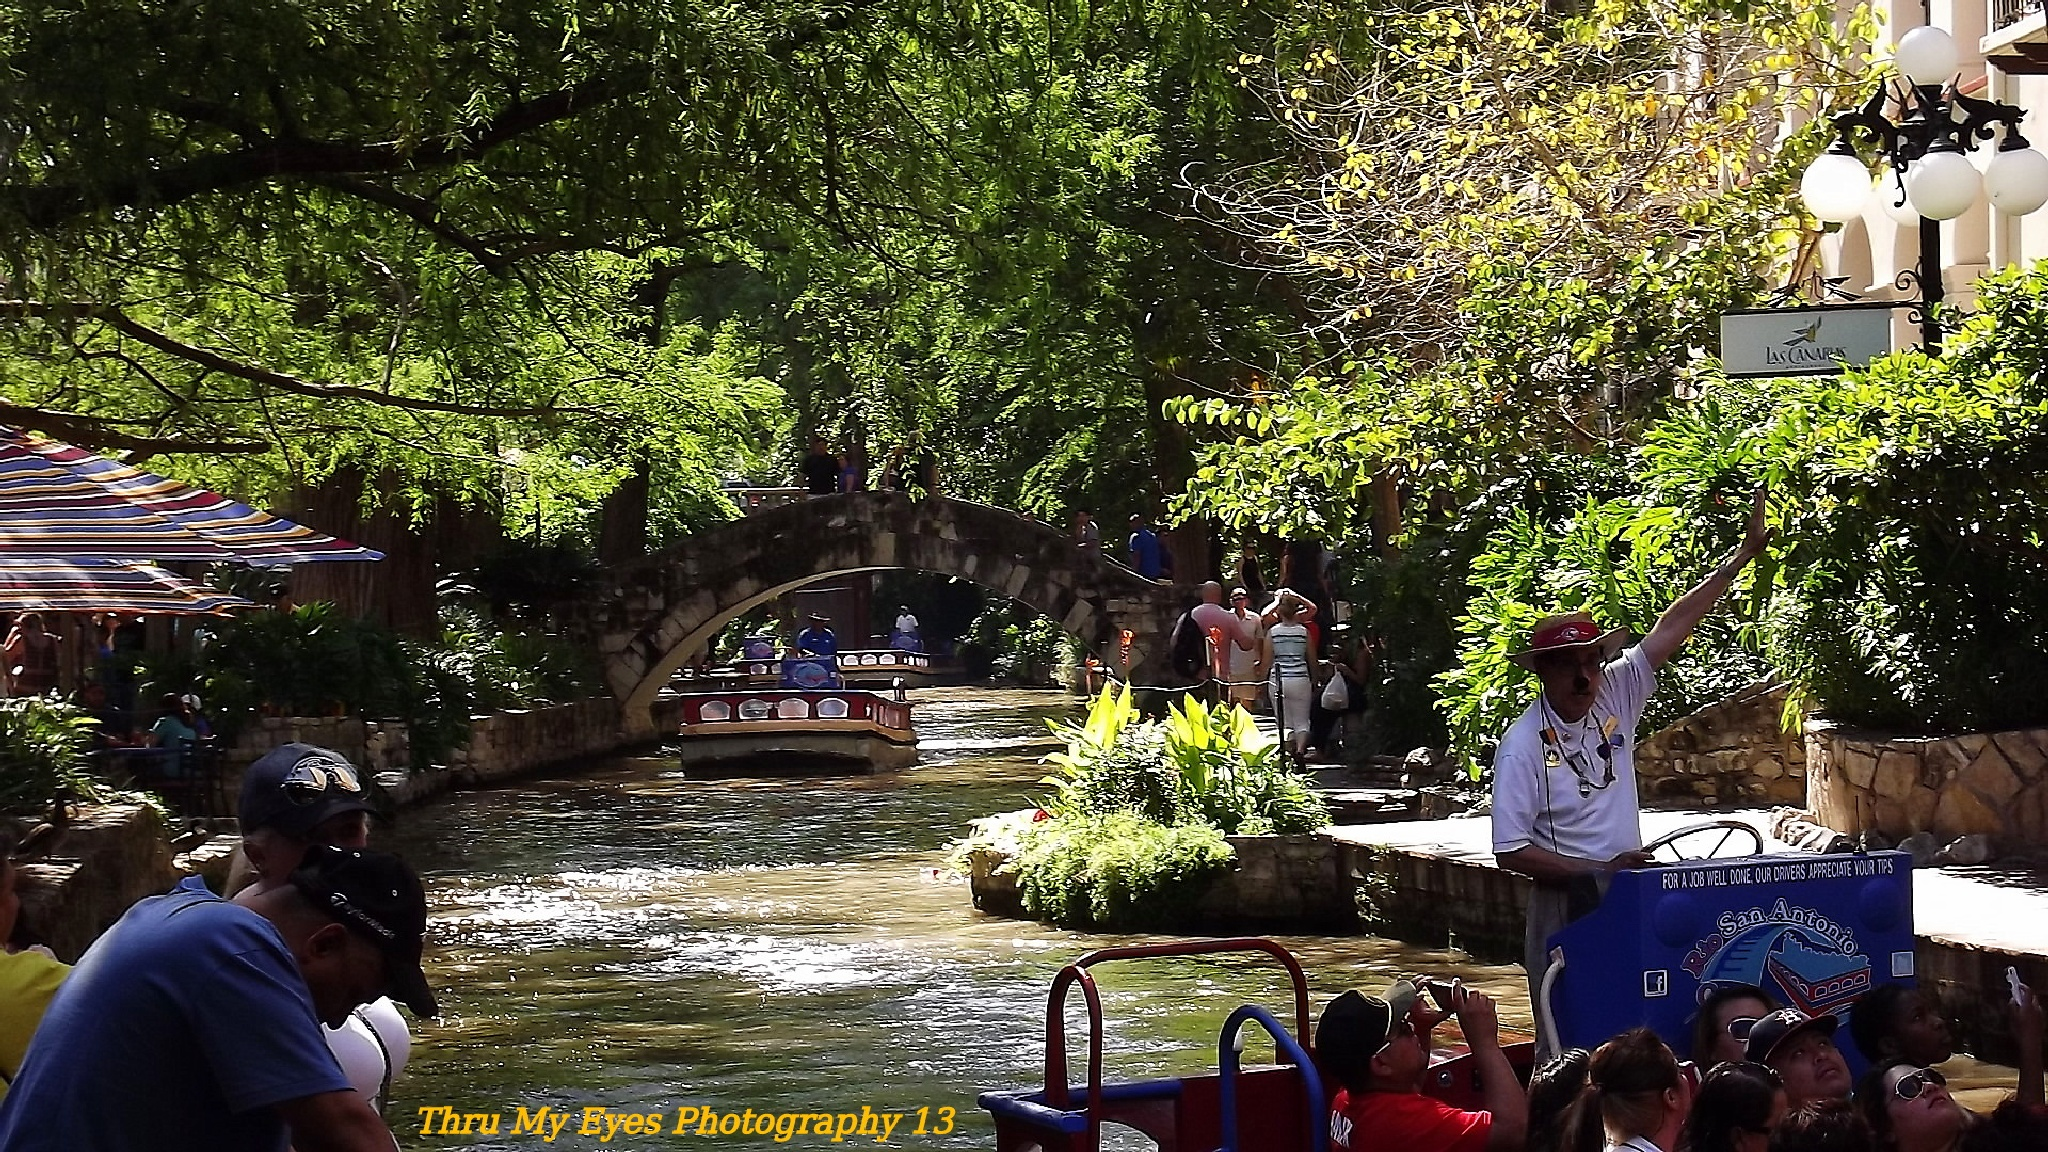 The Historic San Antonio River Walk by captain